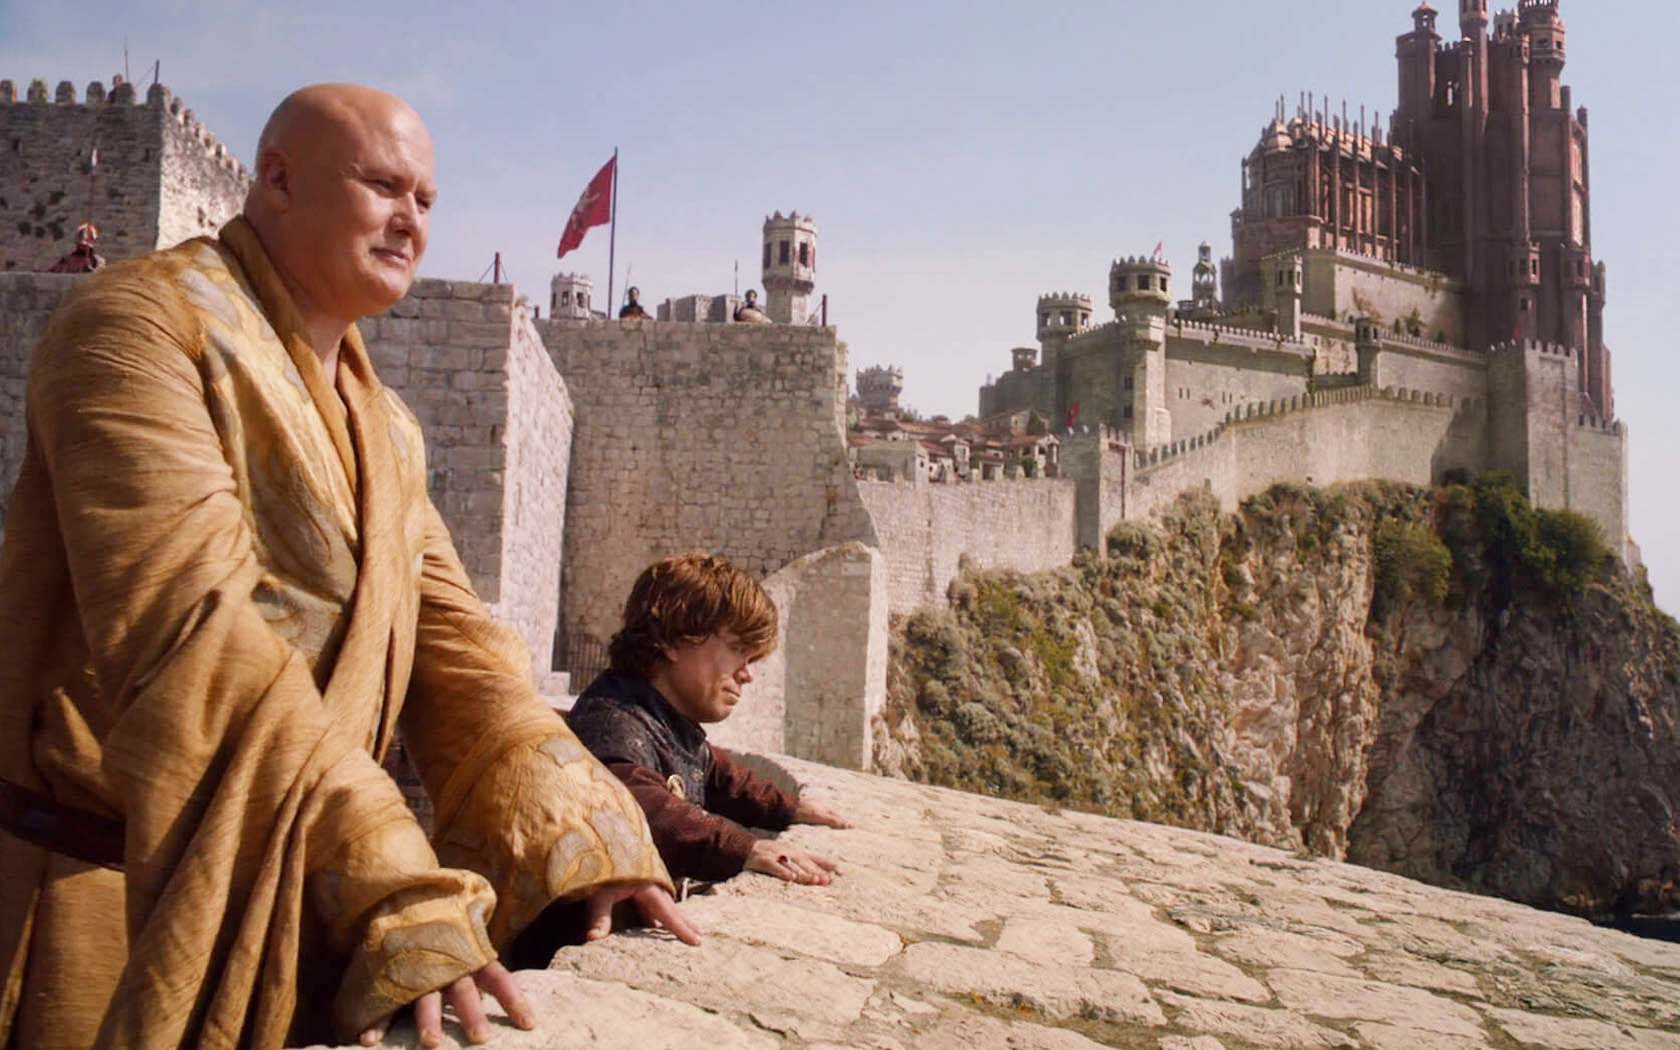 In dubrovnik visit star wars and game of thrones filming locations if youd like to stop by game of thrones kings landing or place your bets at a casino in star wars canto bight you can kill two birds in one stone in a solutioingenieria Images